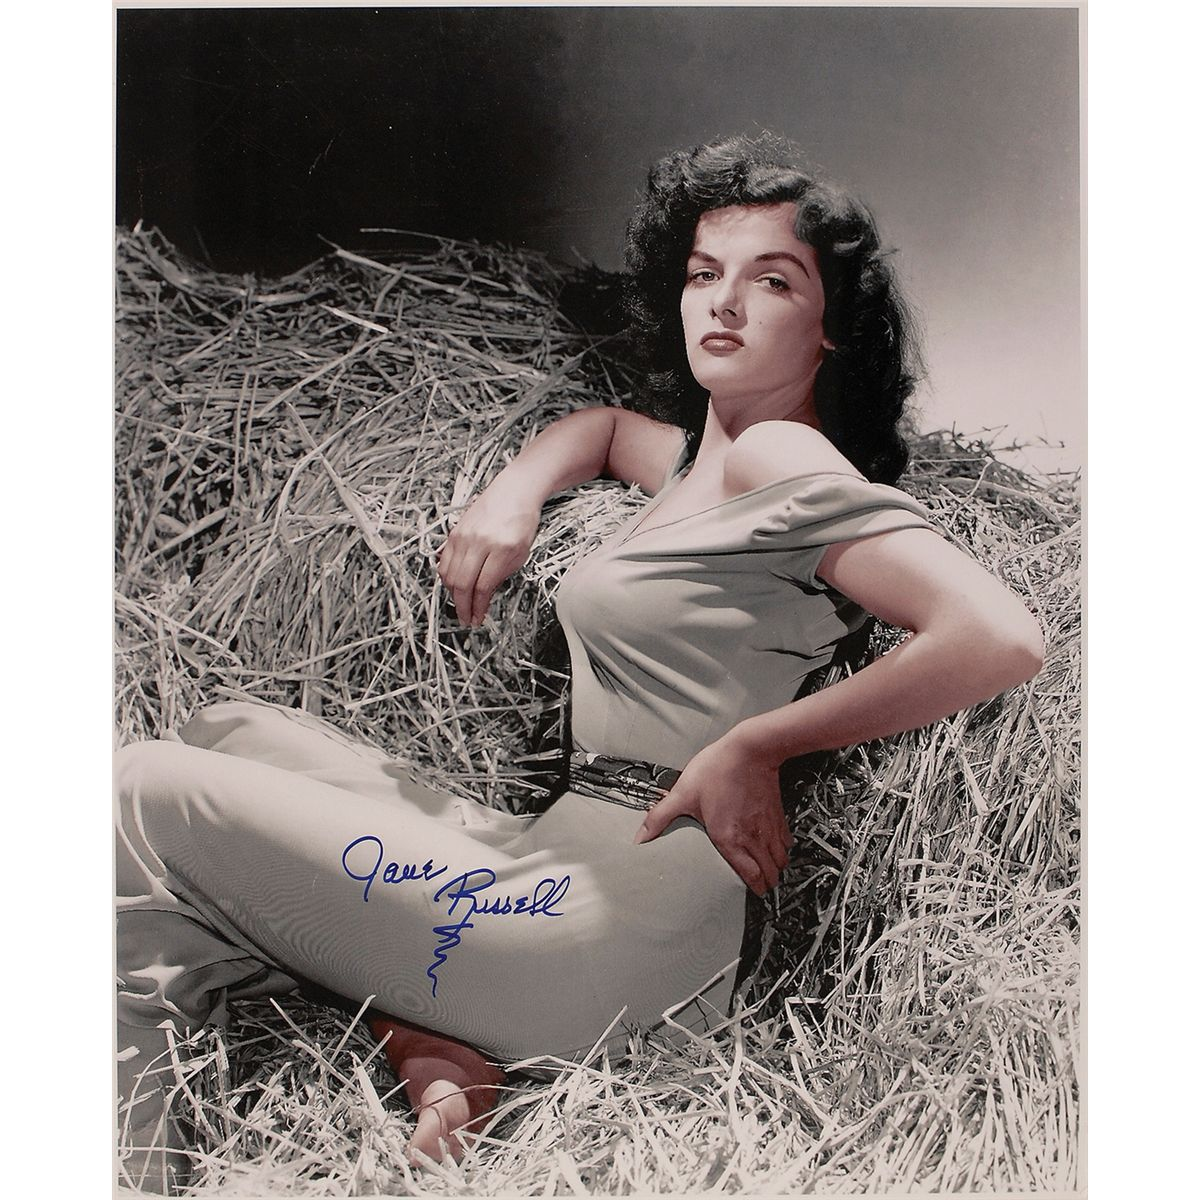 Image Start With Letter D >> Jane Russell